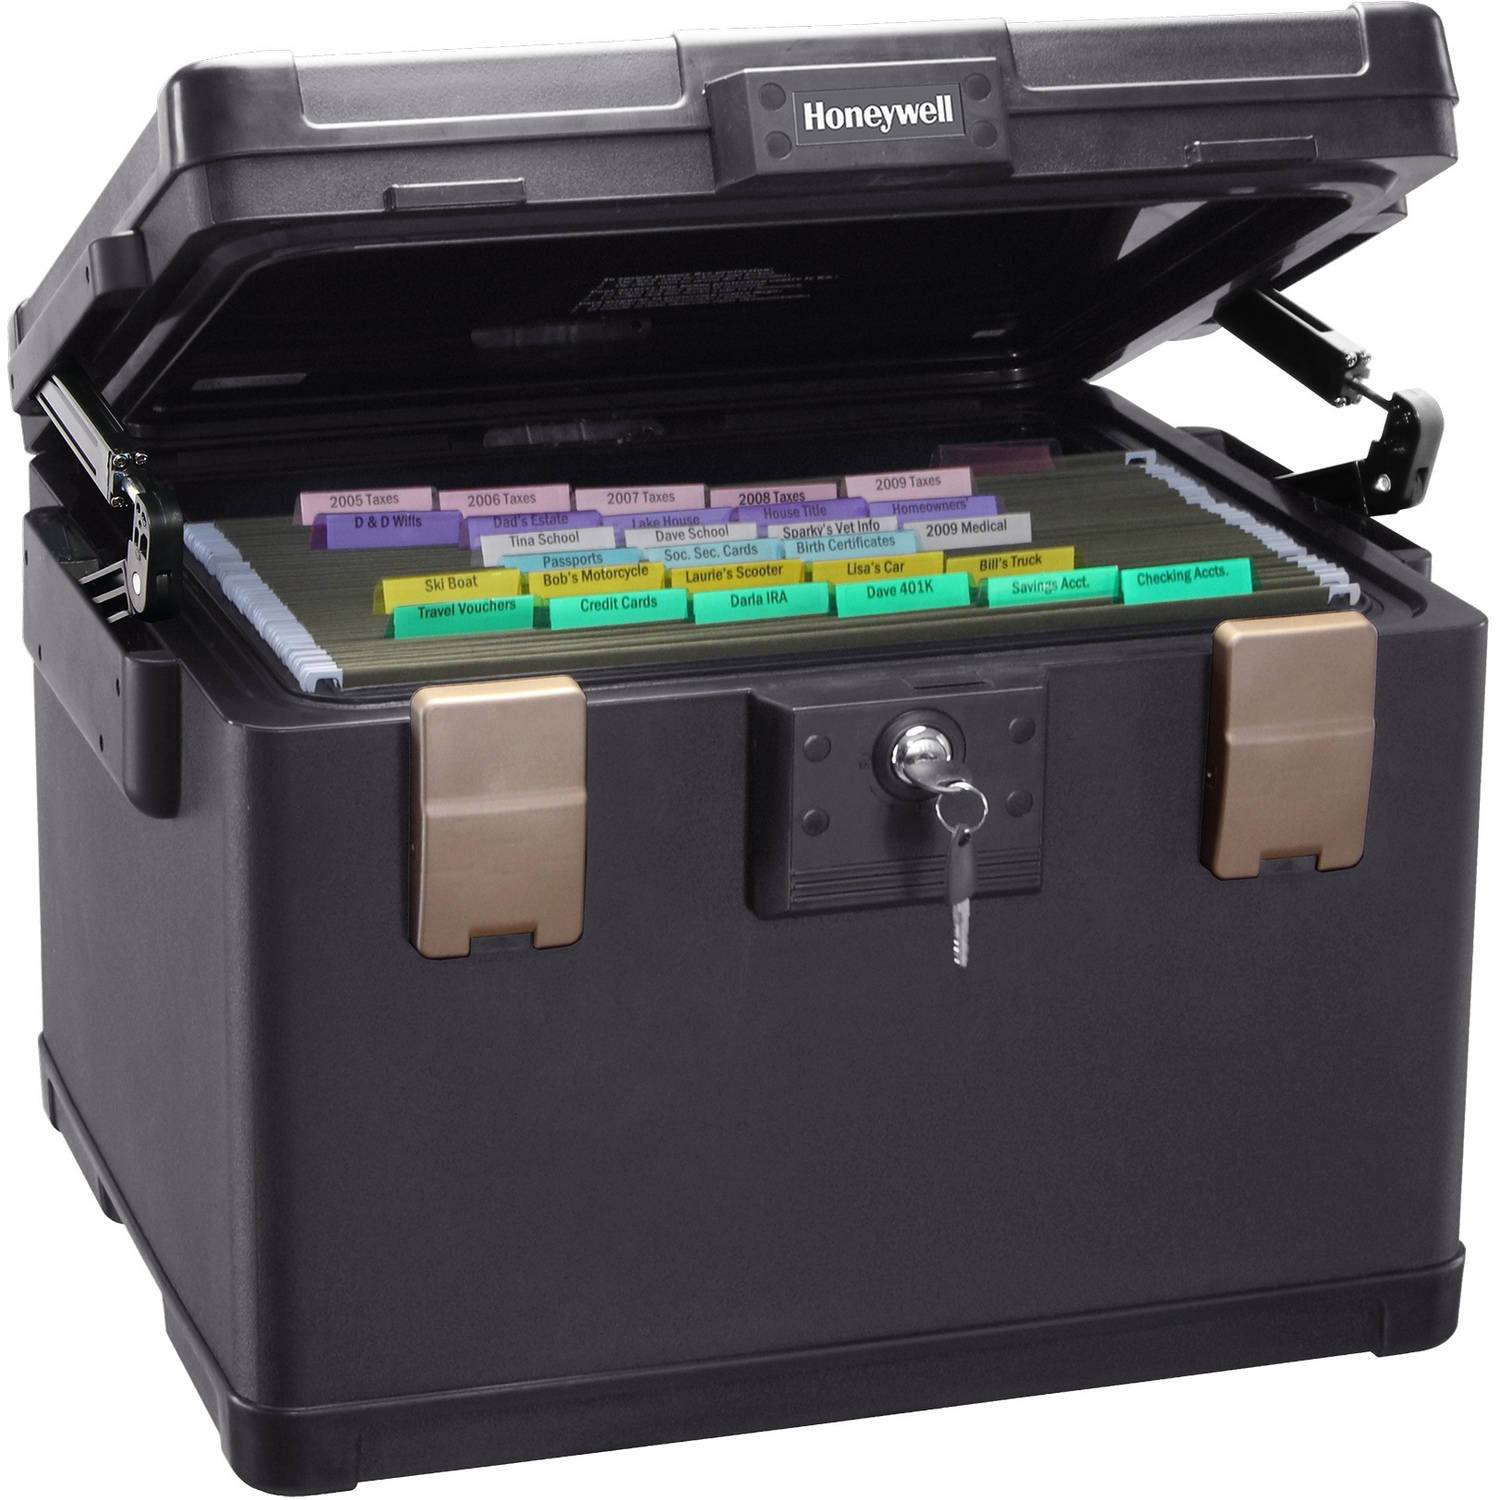 Honeywell 1.06 cu ft Legal Size Waterproof 1-Hour Fire File Chest, 1108 -  Walmart.com